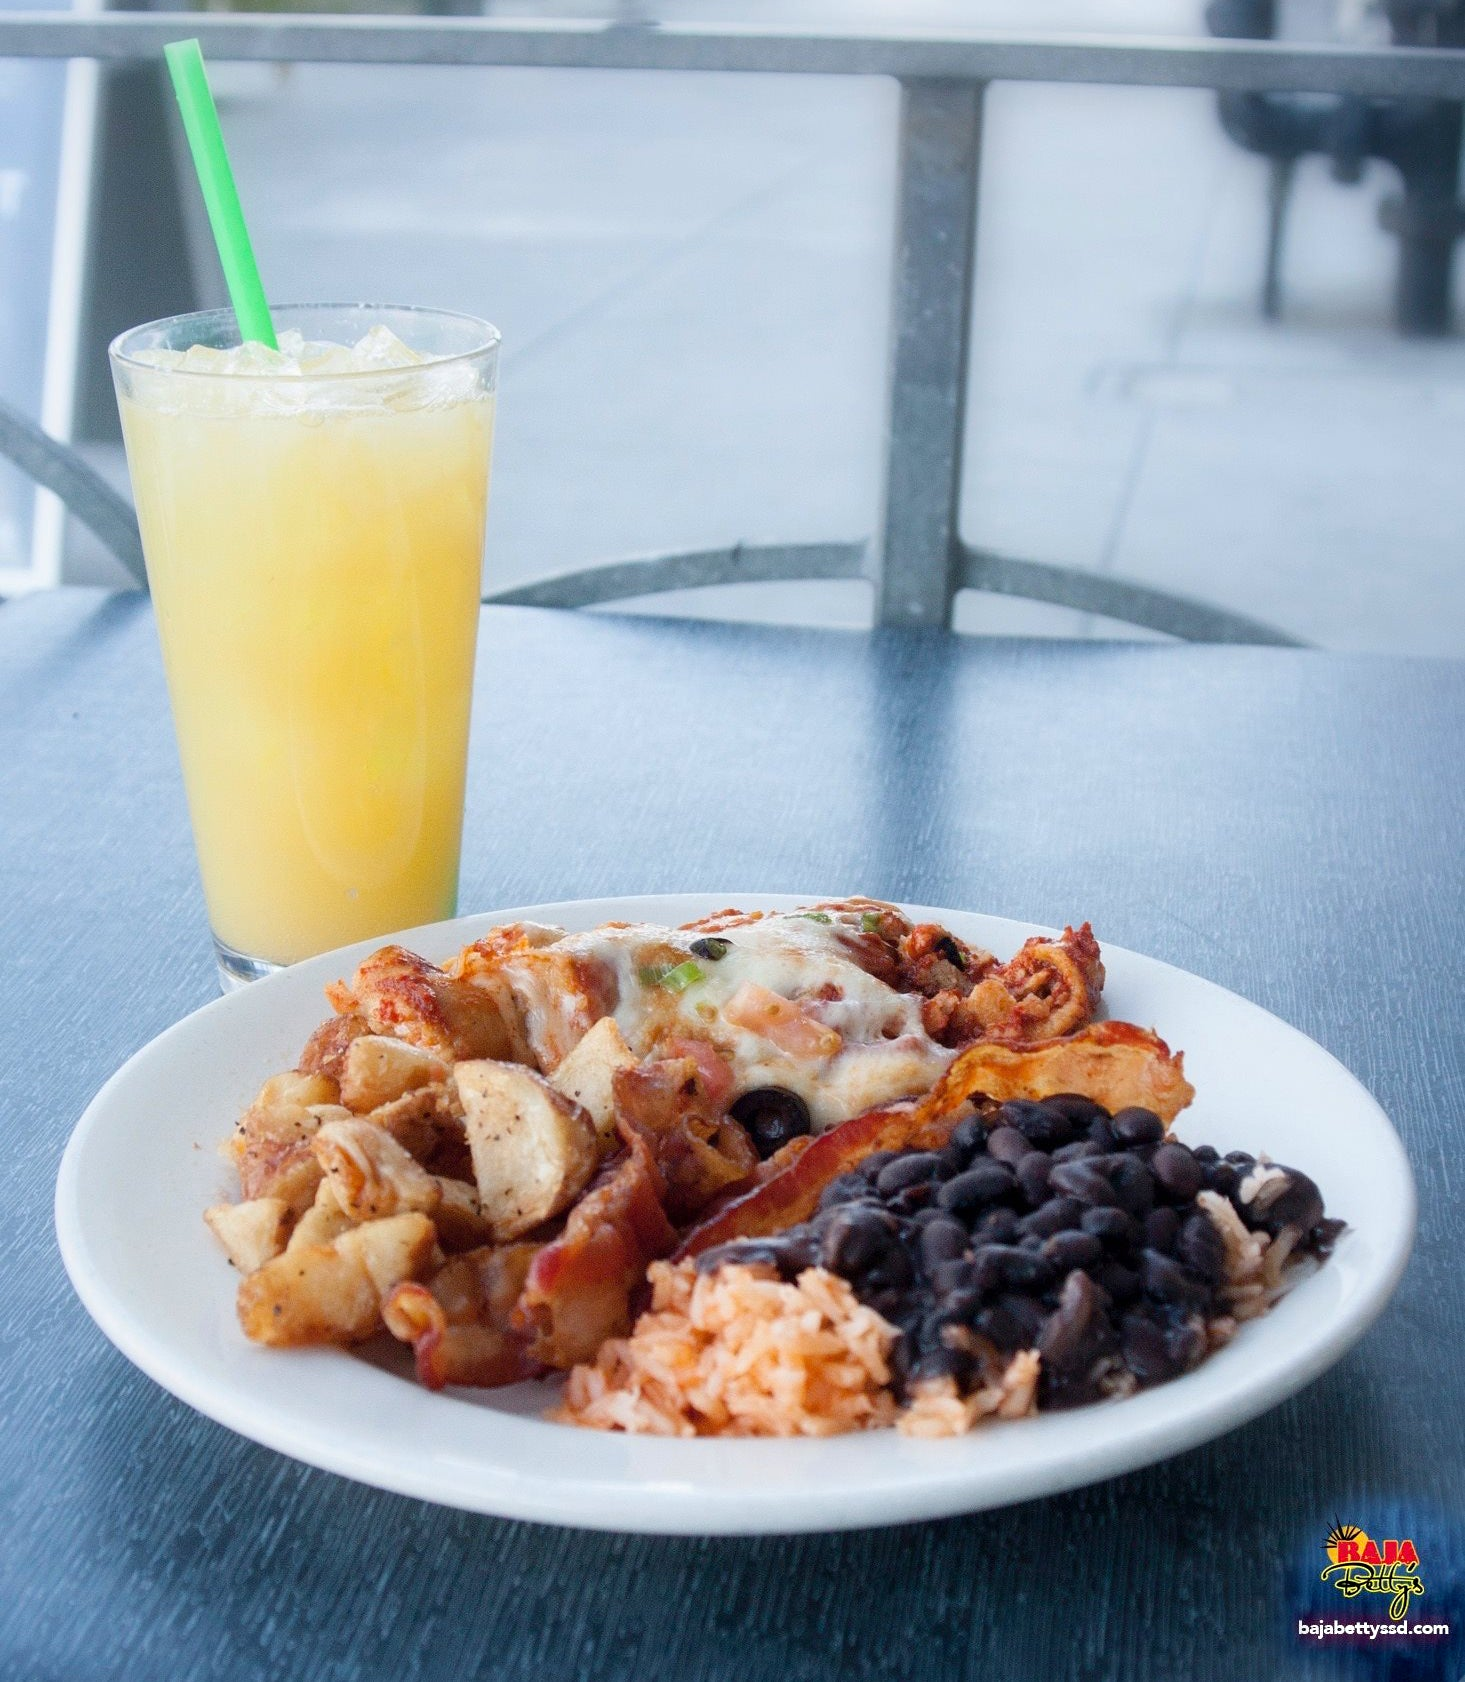 Baja Bettys in San Diego: Mexican cuisine and offers weekend brunch